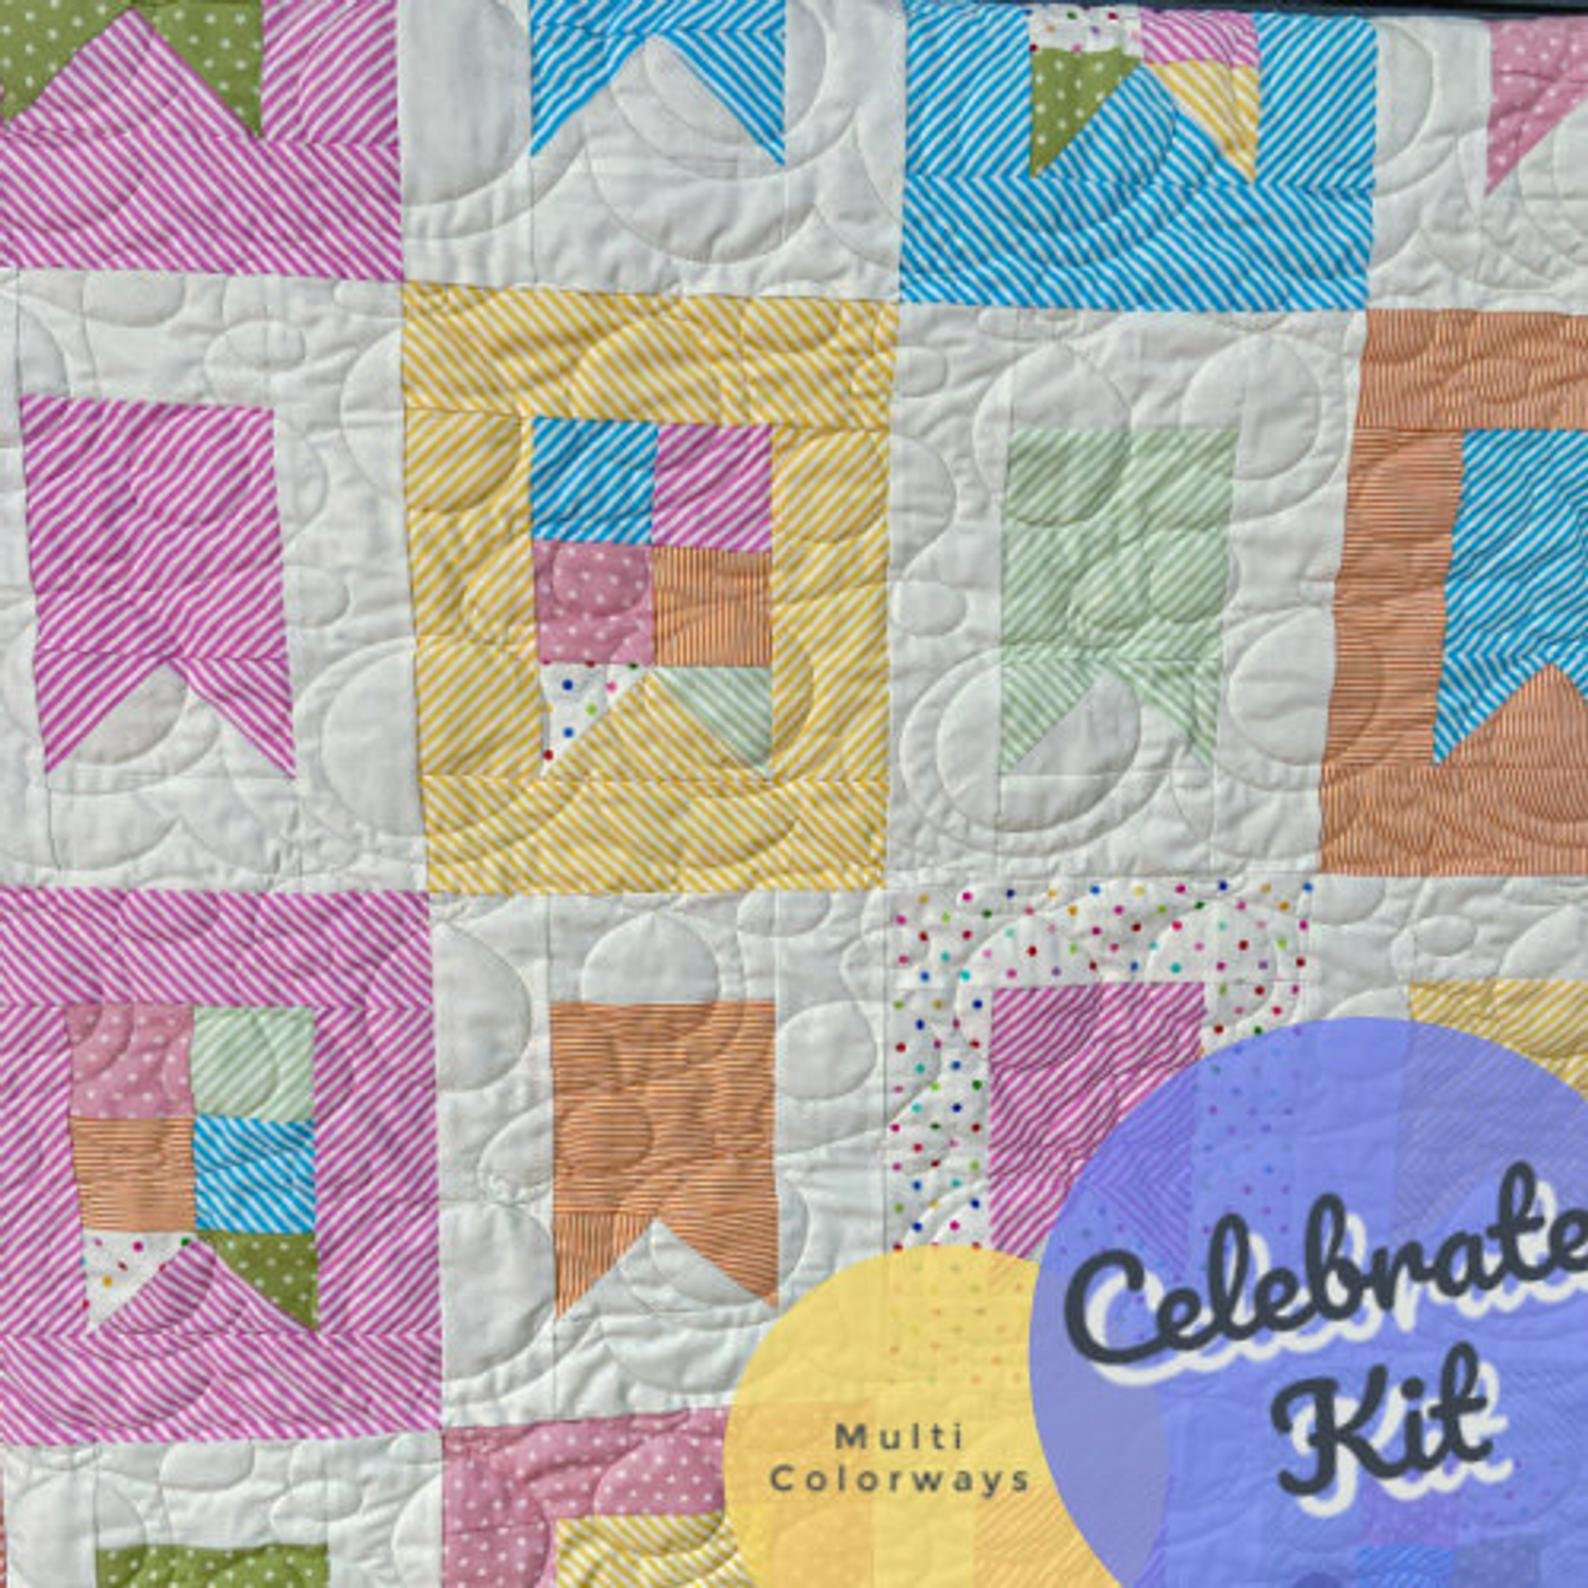 Celebrate Quilt Kit using Cluck Cluck Sew Pattern